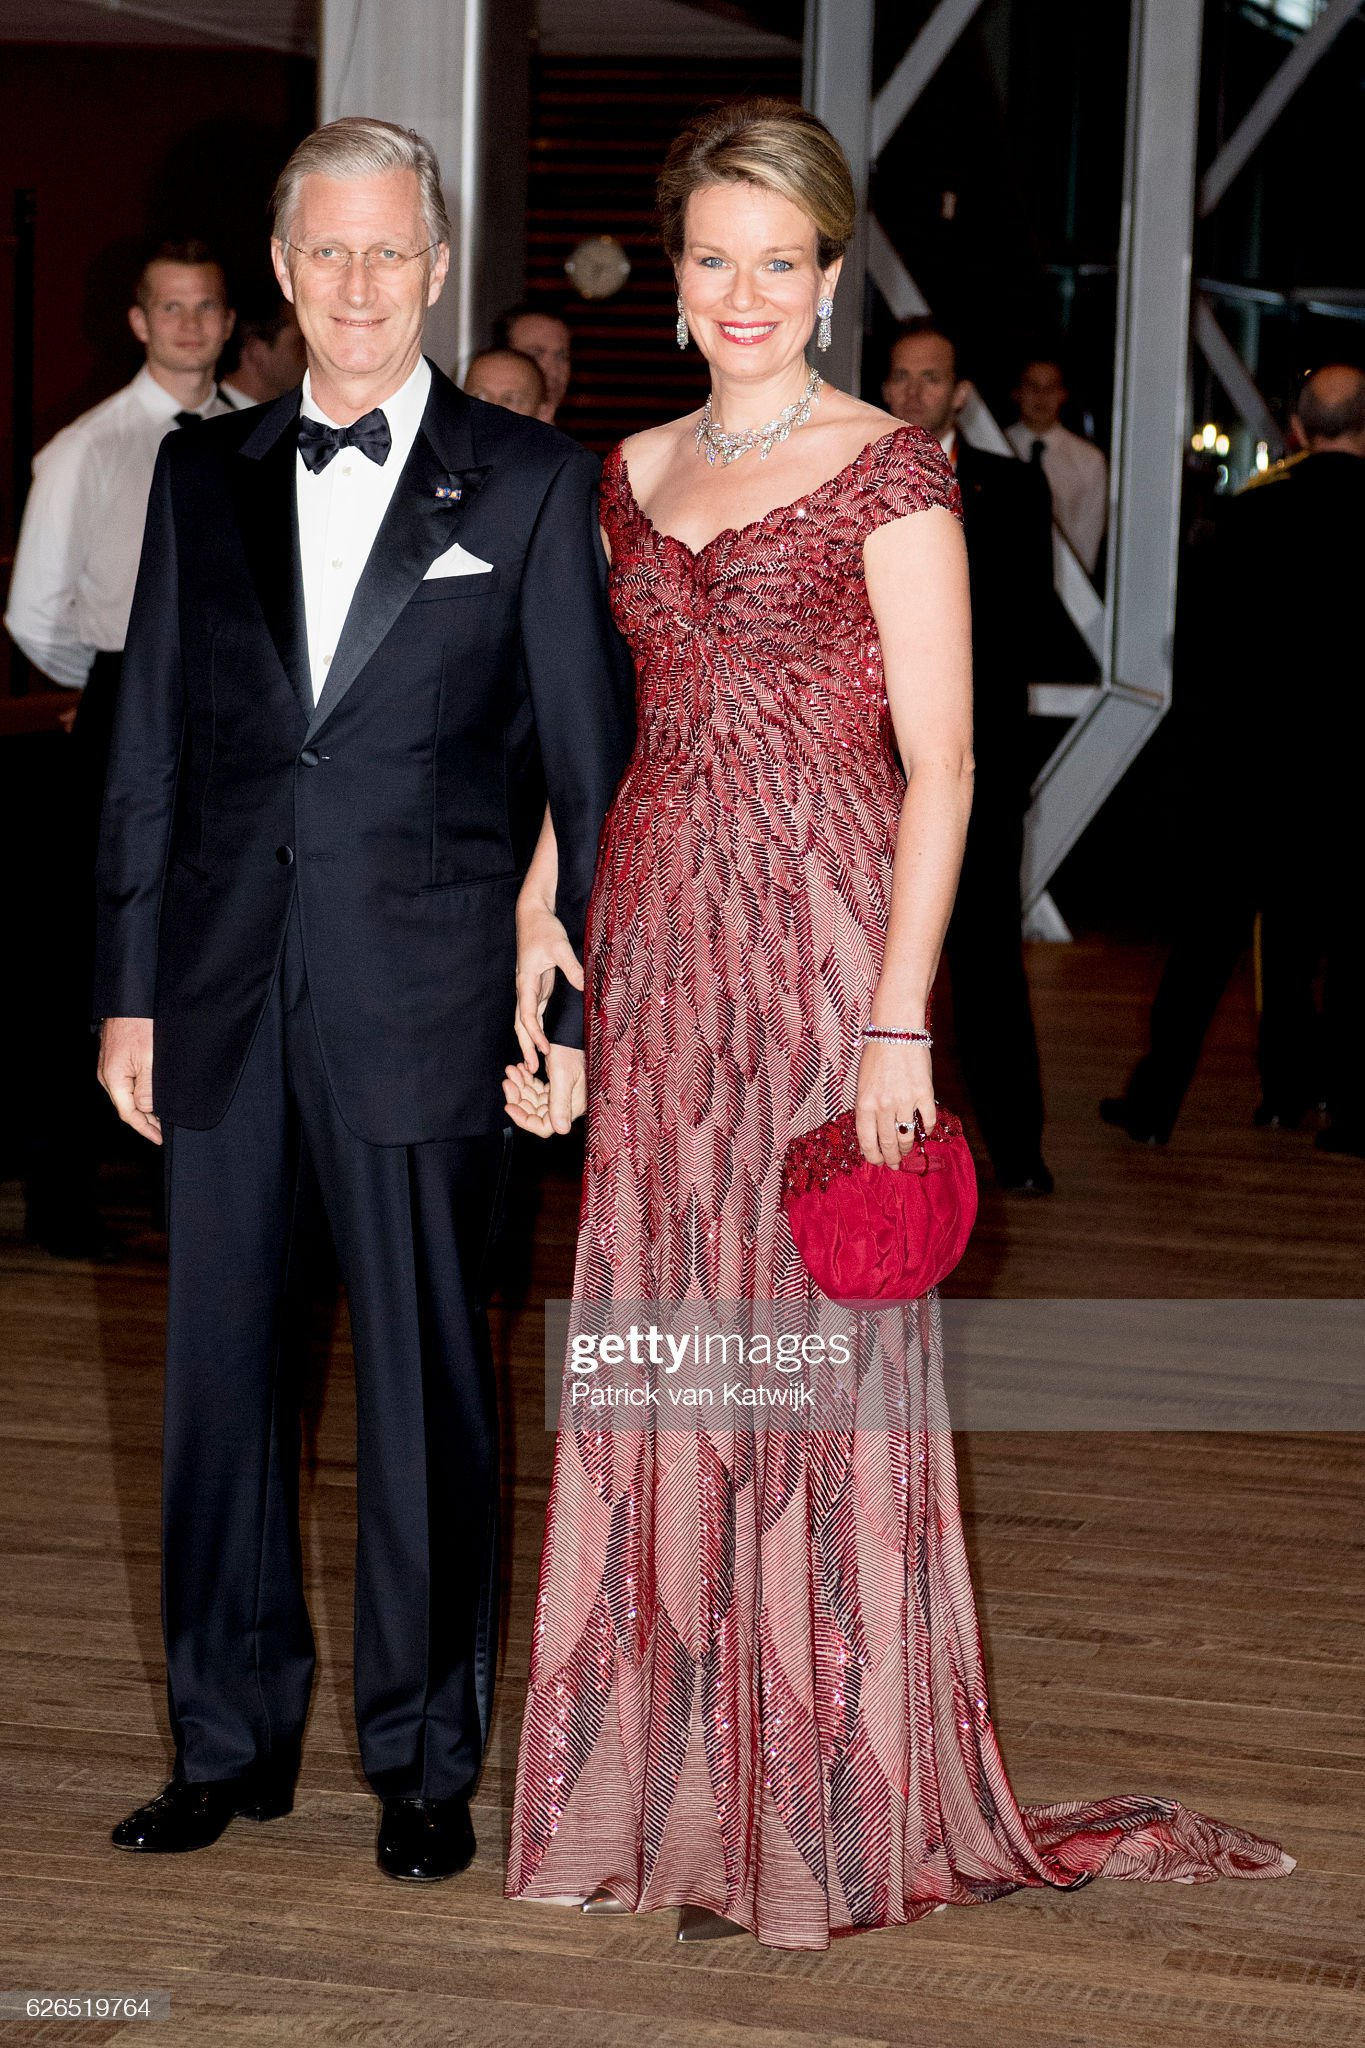 Вечерние наряды Королевы Матильды Queen Mathilde of Belgium and King Philippe of Belgium On A 3 Day Official Visit In Holland : Day Two : News Photo